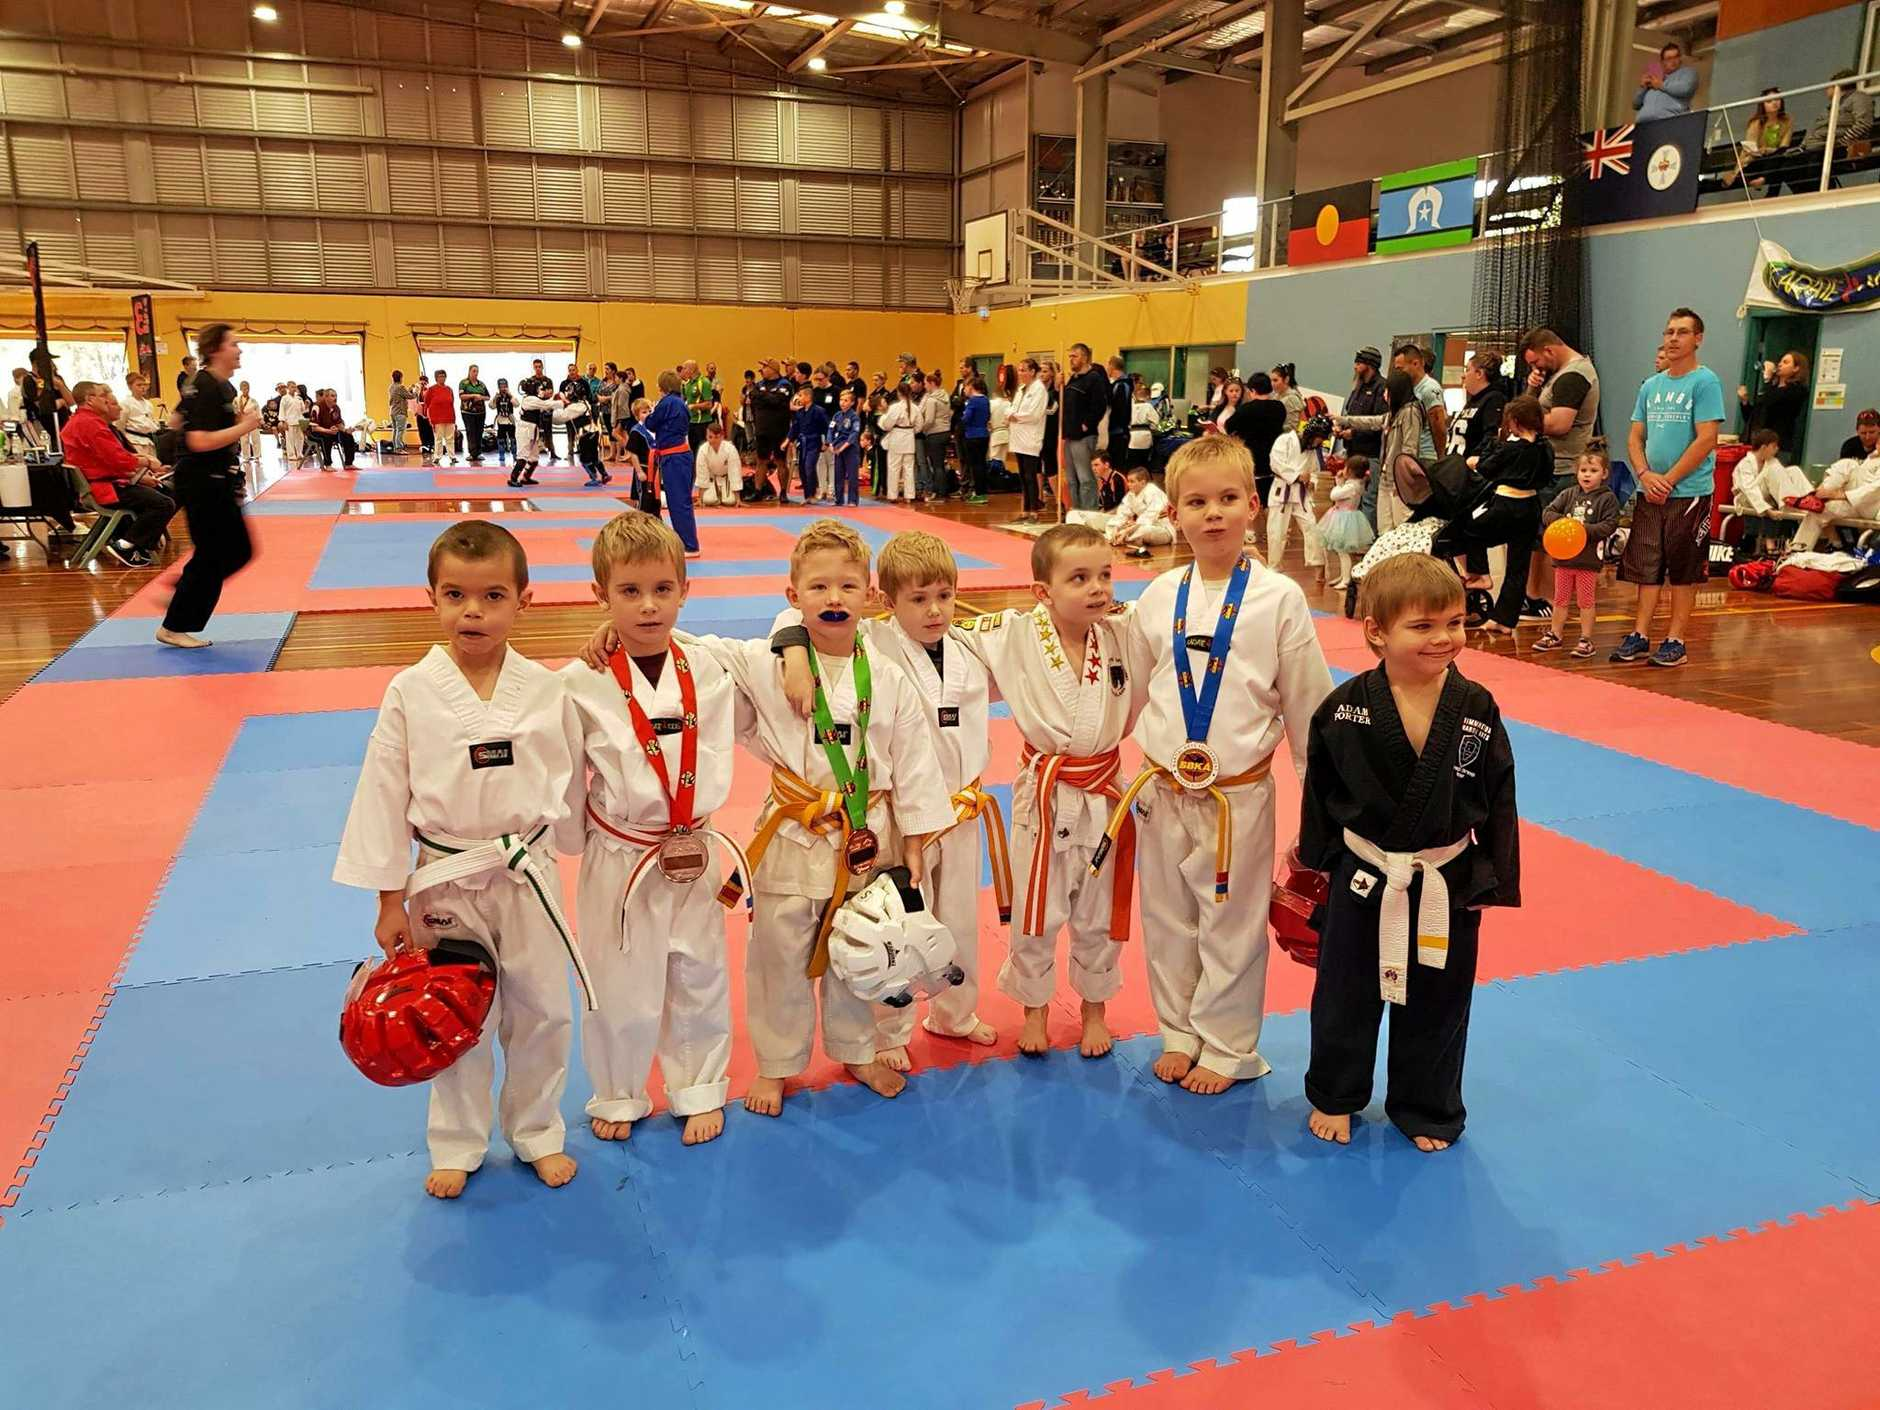 Participants as young as four-year-olds competed at the South Burnett Martial Arts Tournament in Kingaroy on Sunday August 12.